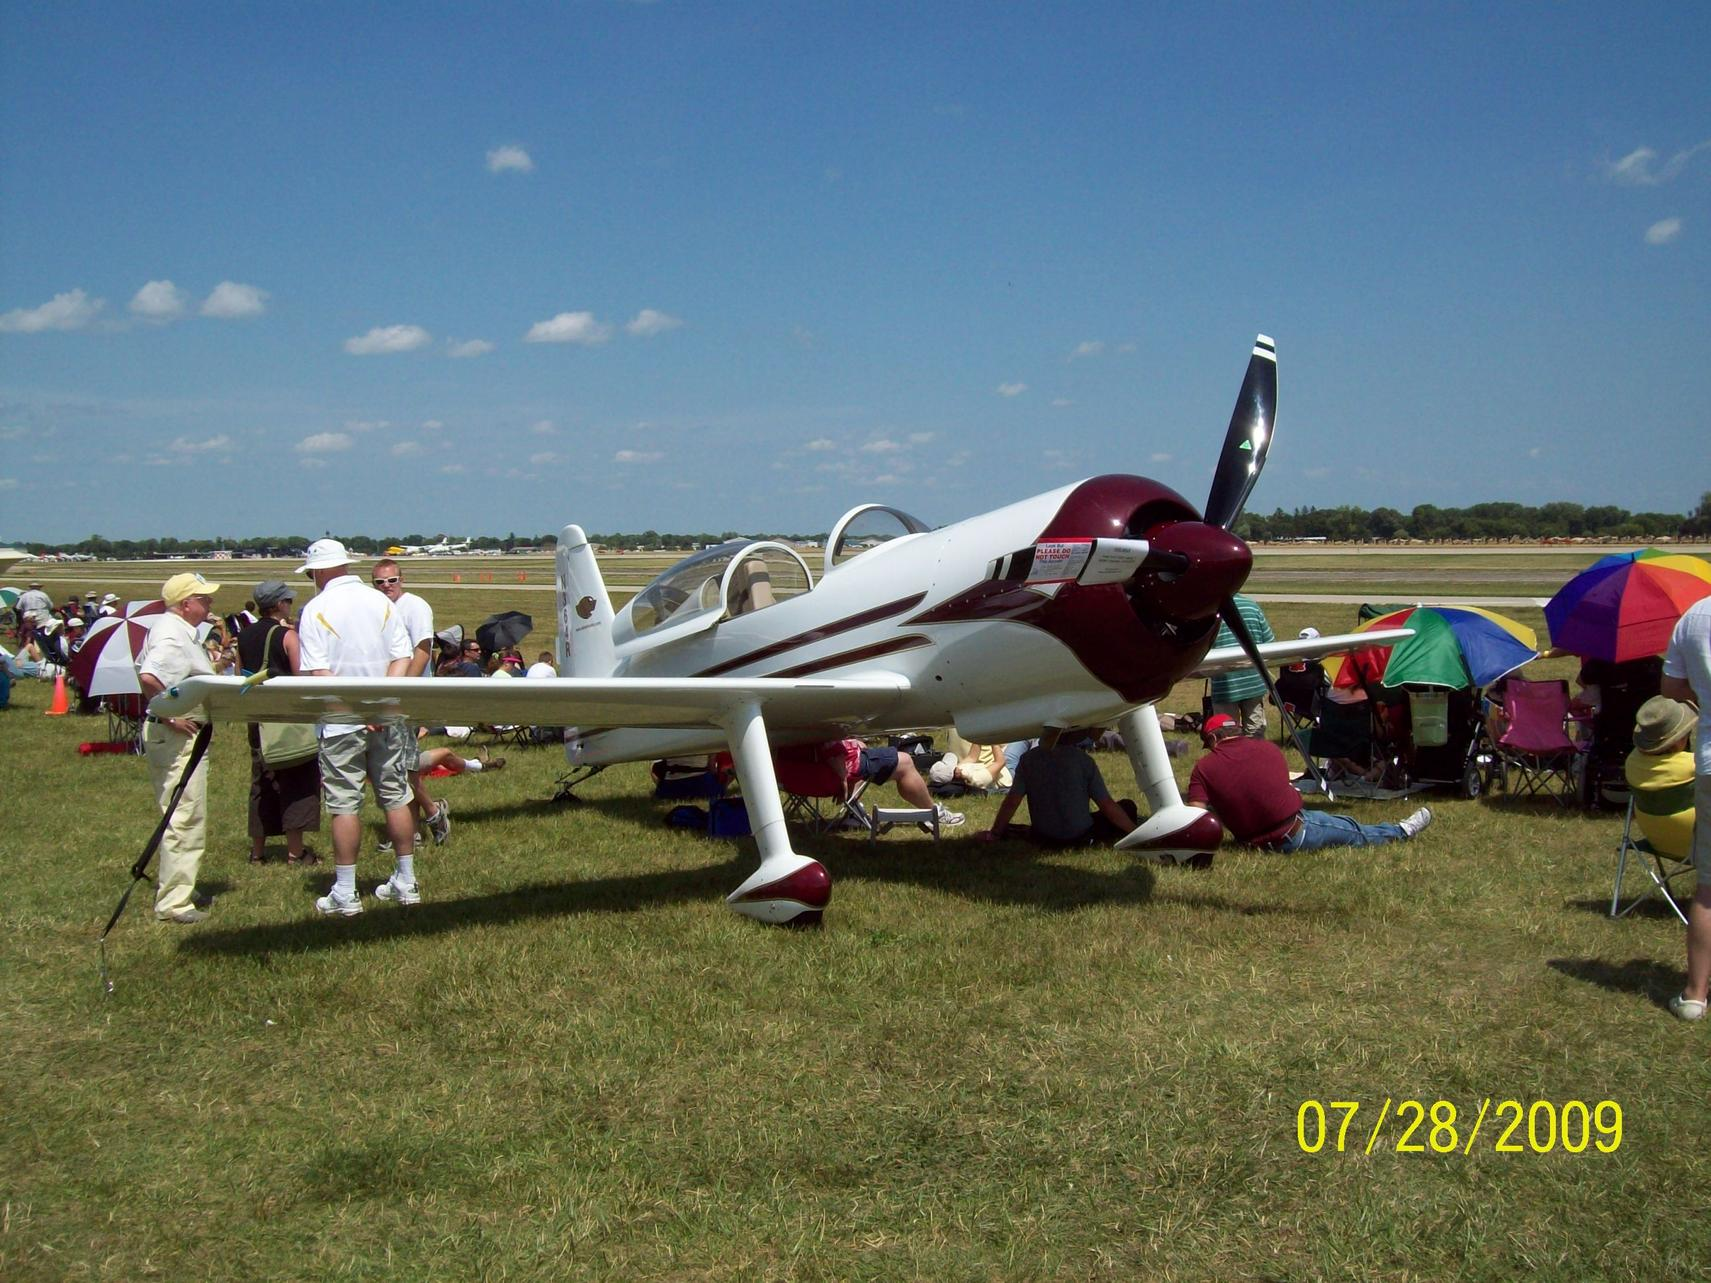 Click image for larger version.  Name:Chris  RV-7Ajuly 2009 365.jpg Views:38 Size:301.6 KB ID:50442